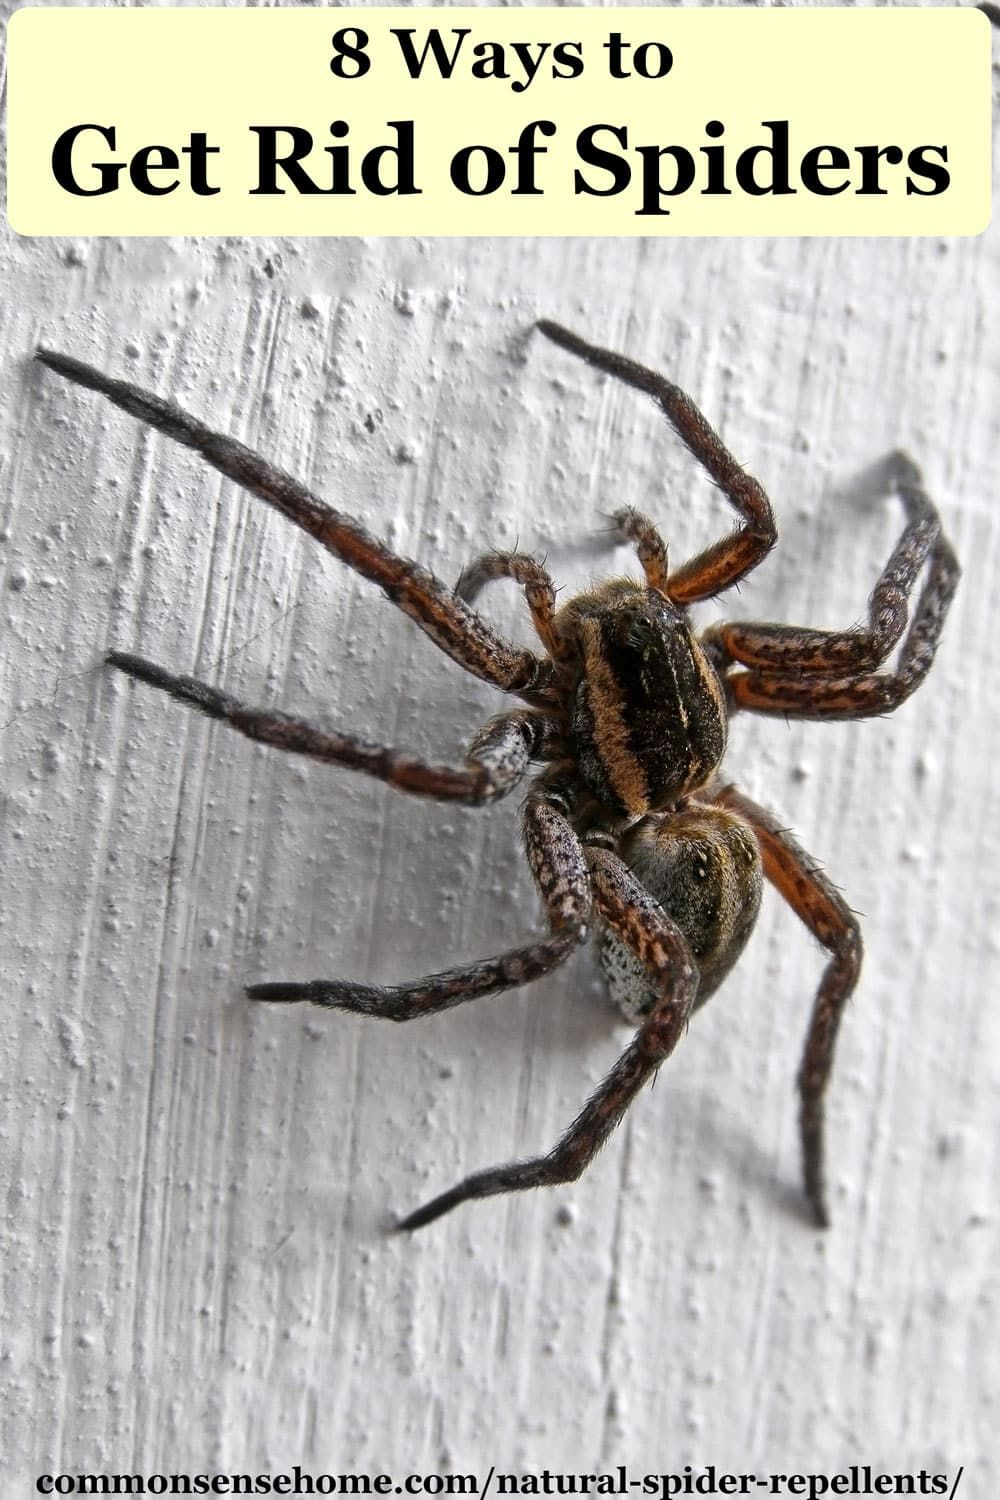 Natural Spider Repellents 8 Ways to Get Rid of Spiders